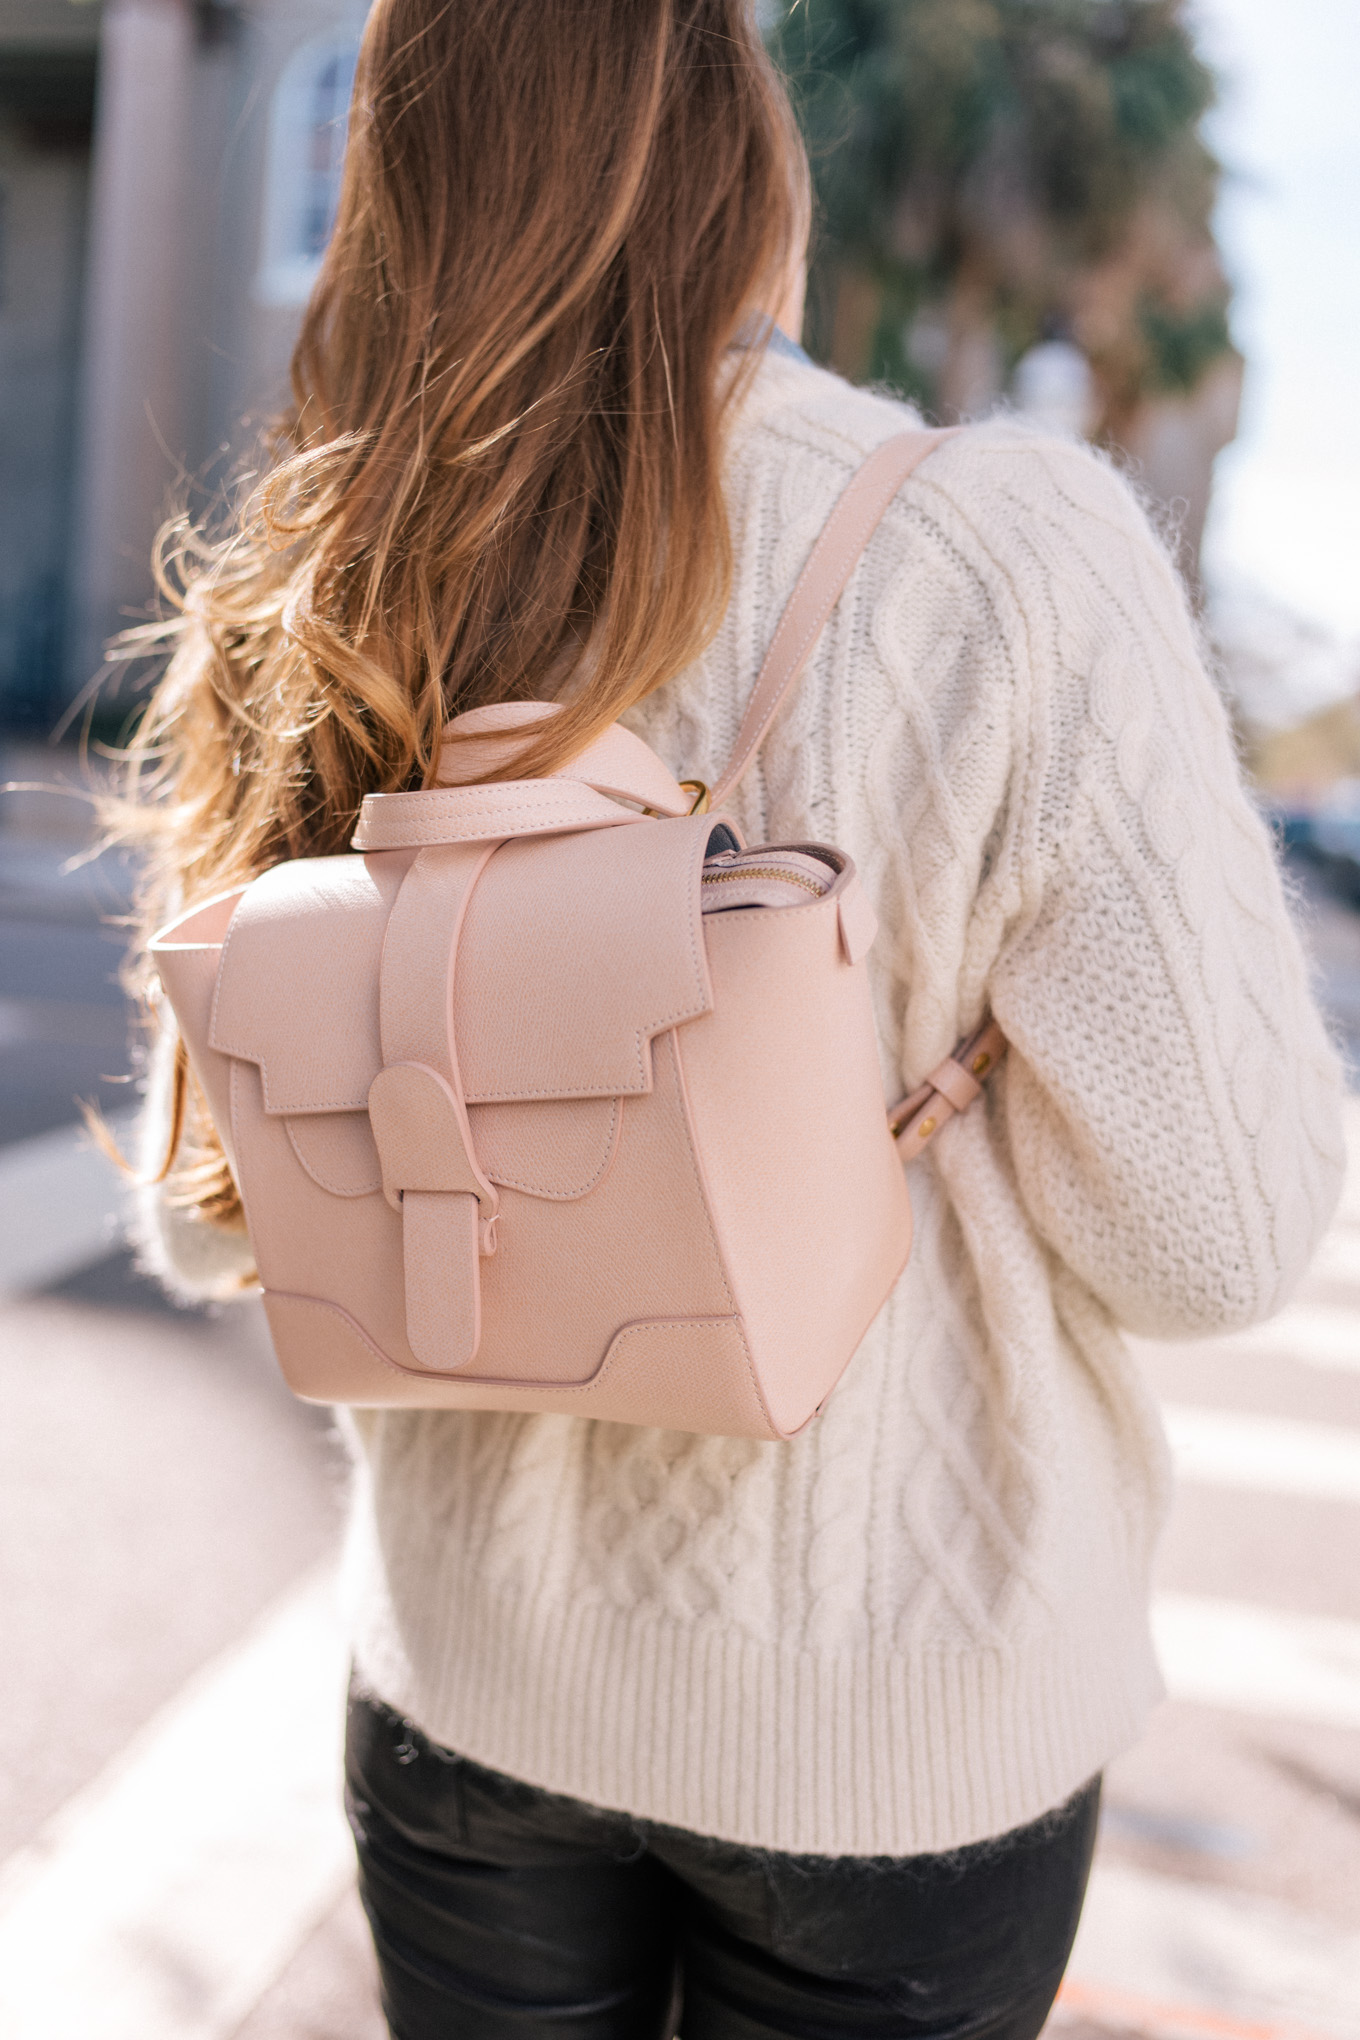 gmg-four-looks-one-bag-1009892